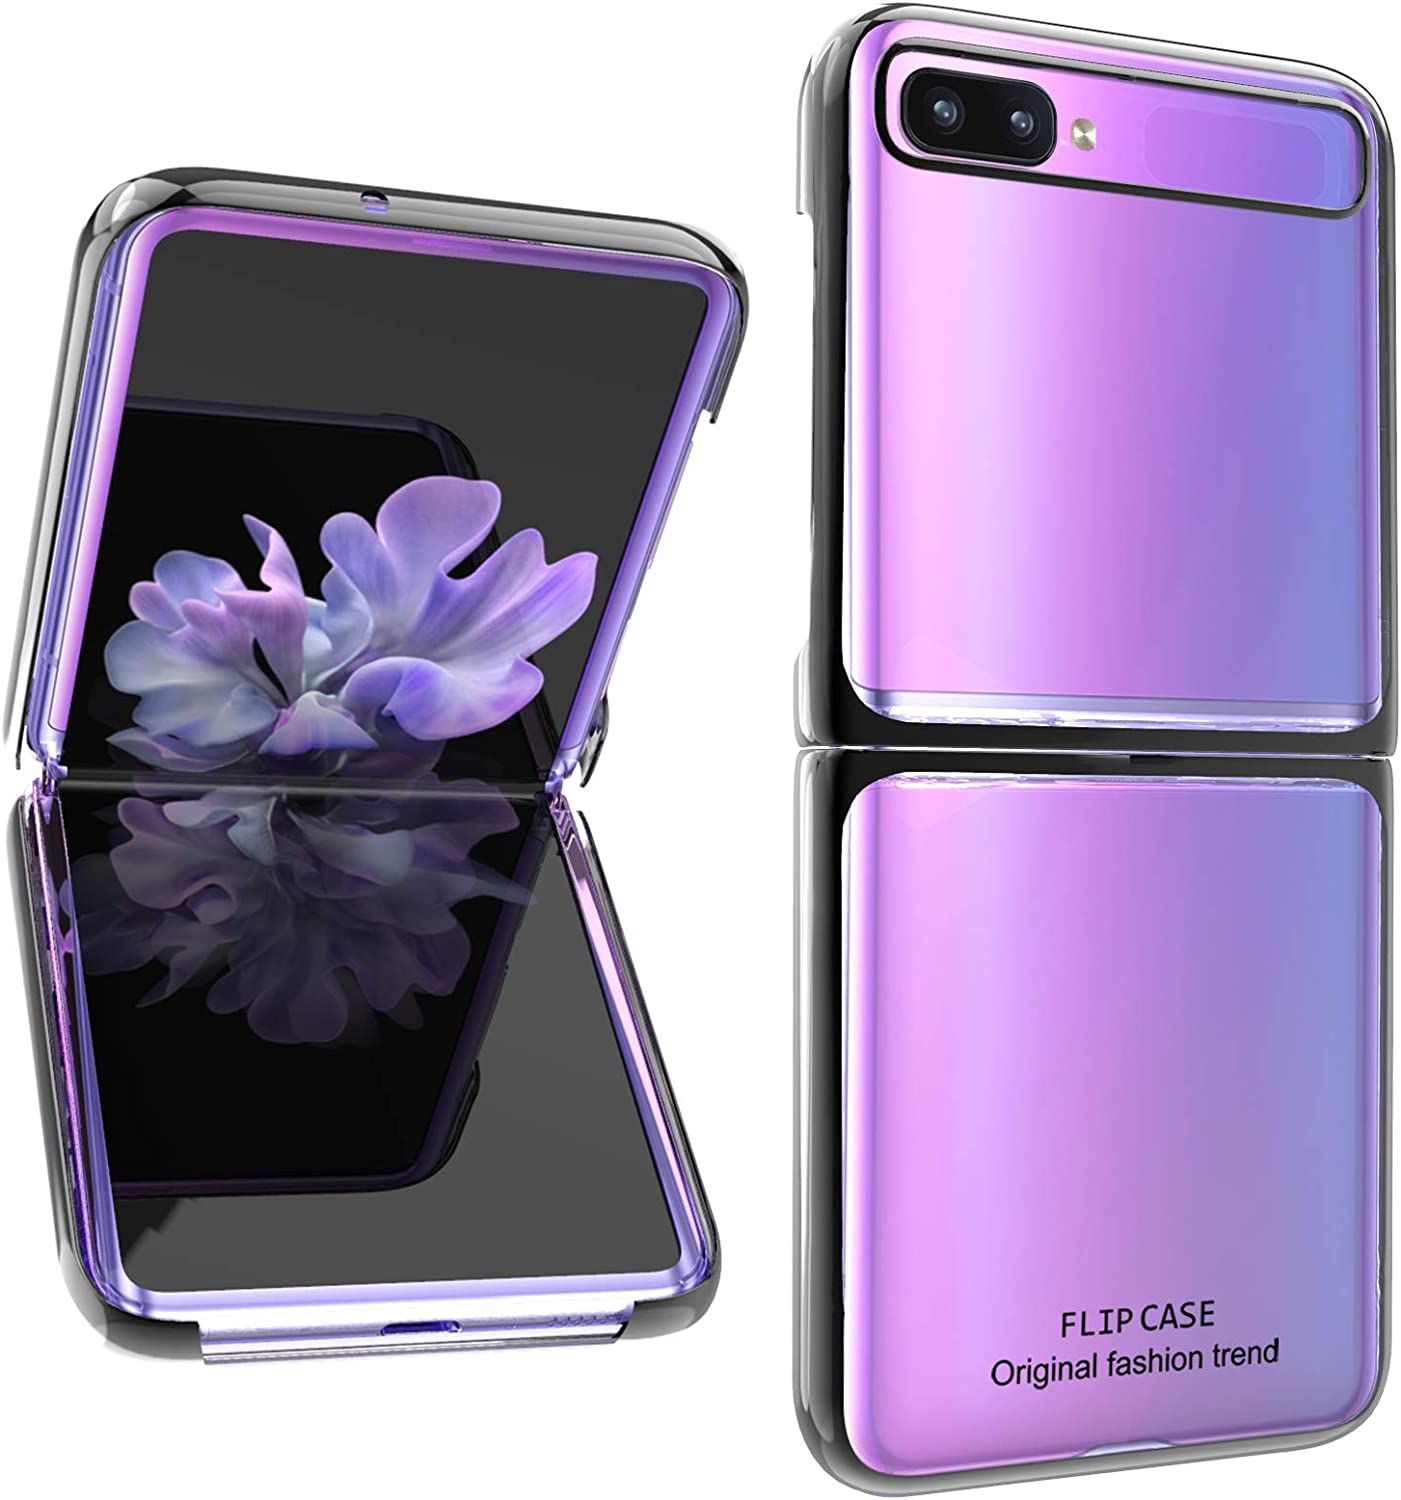 AIGOMARA Clear Case for Samsung Galaxy Z Flip 5G Hard PC Crystal Cover Anti-Scratch Shockproof Protection Thin Slim Phone Cover for Galaxy Z Flip 5G, Clear-Black